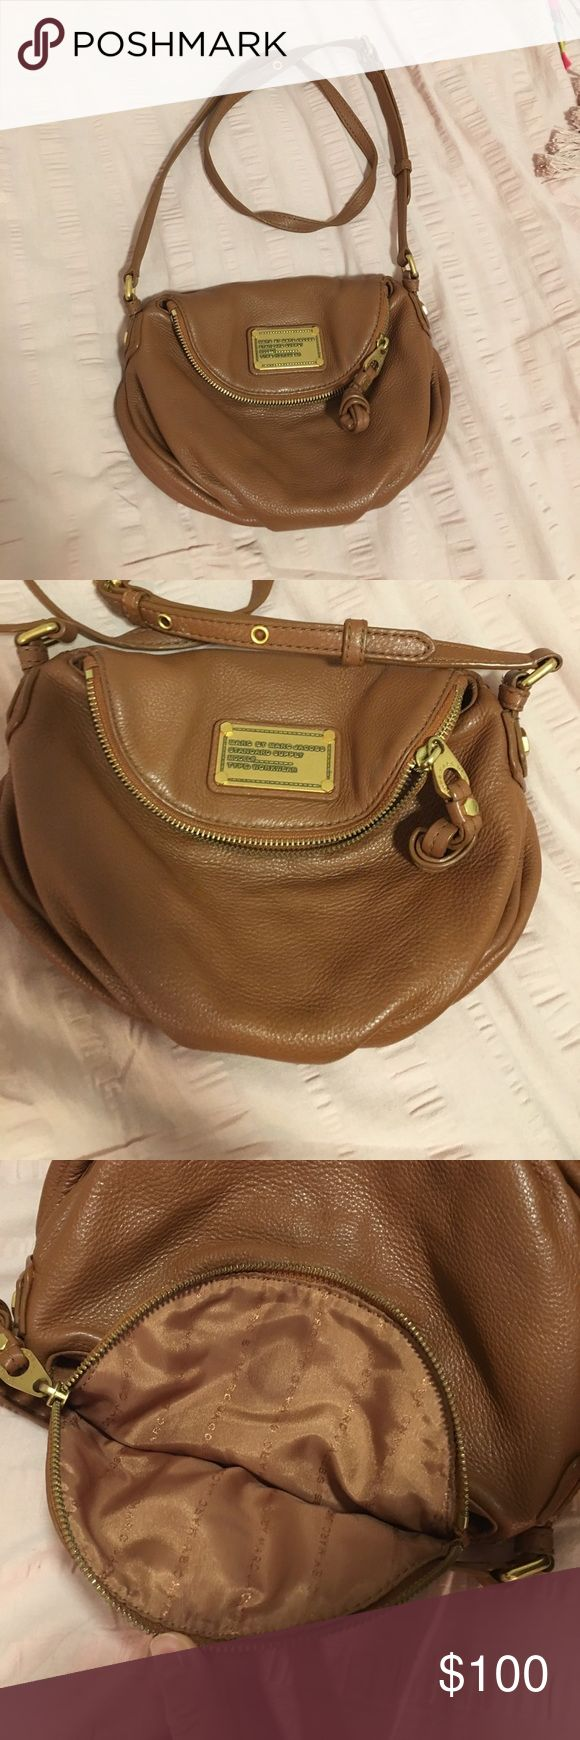 Marc by Marc Jacobs purse tan small crossbody Is used but in great condition! Marc By Marc Jacobs Bags Crossbody Bags